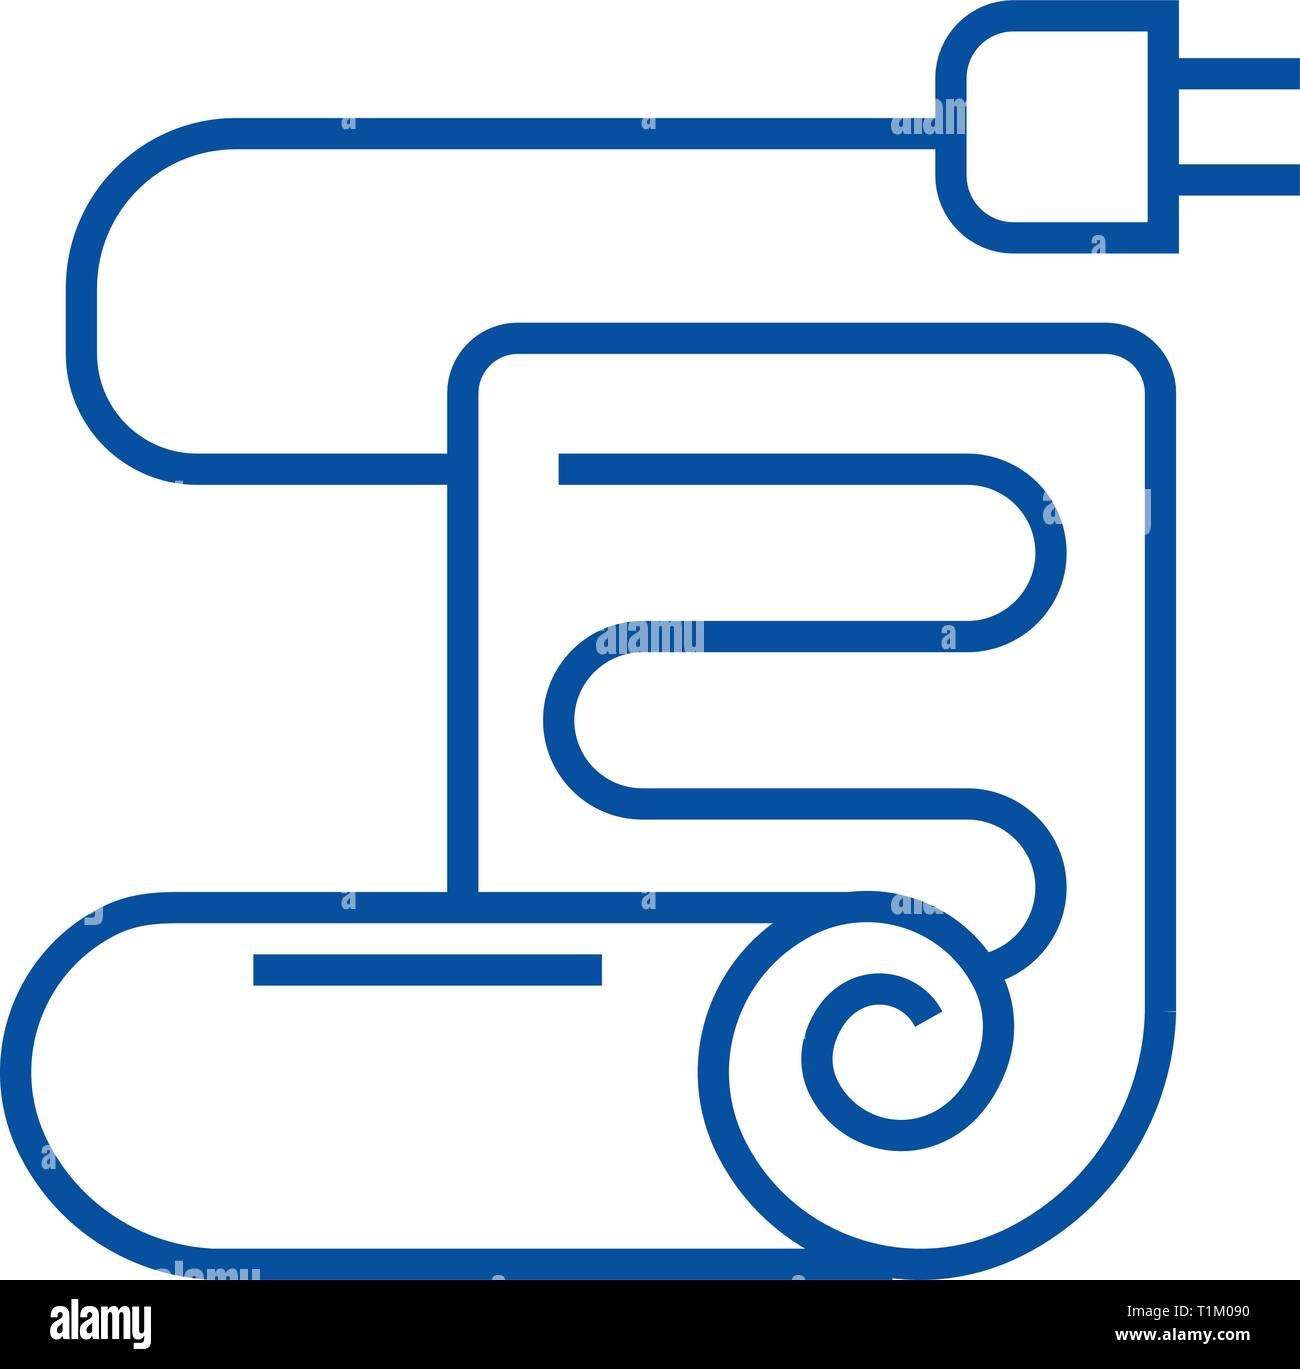 Warm floor,under floor heating line icon concept. Warm floor,under floor heating flat  vector symbol, sign, outline illustration. - Stock Vector